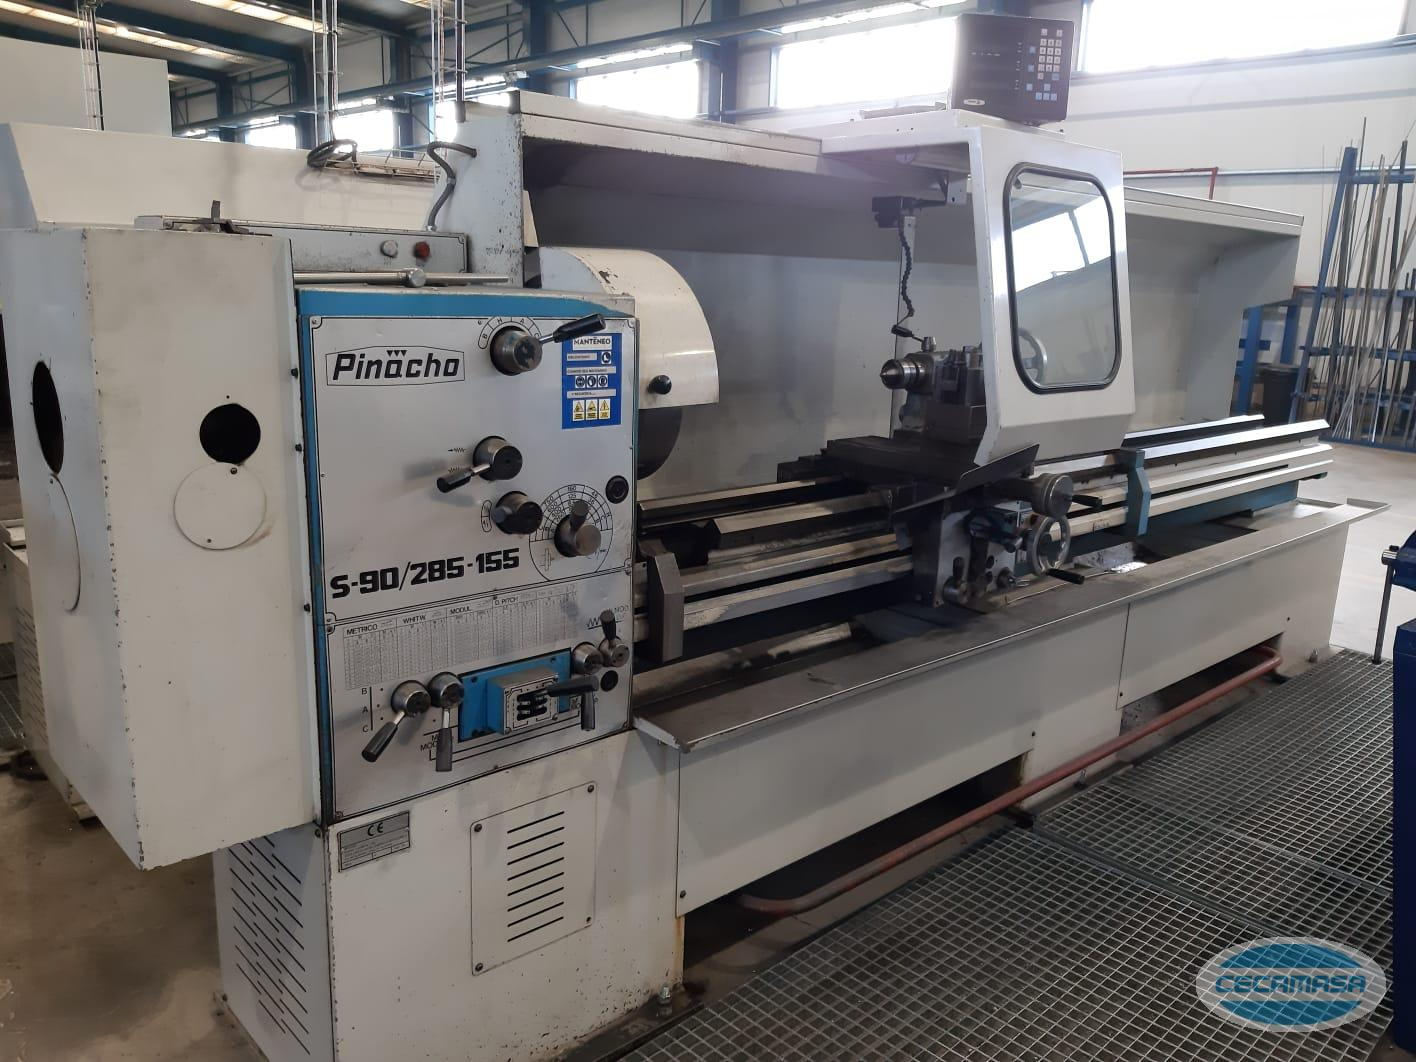 Second-hand Pinacho lathe